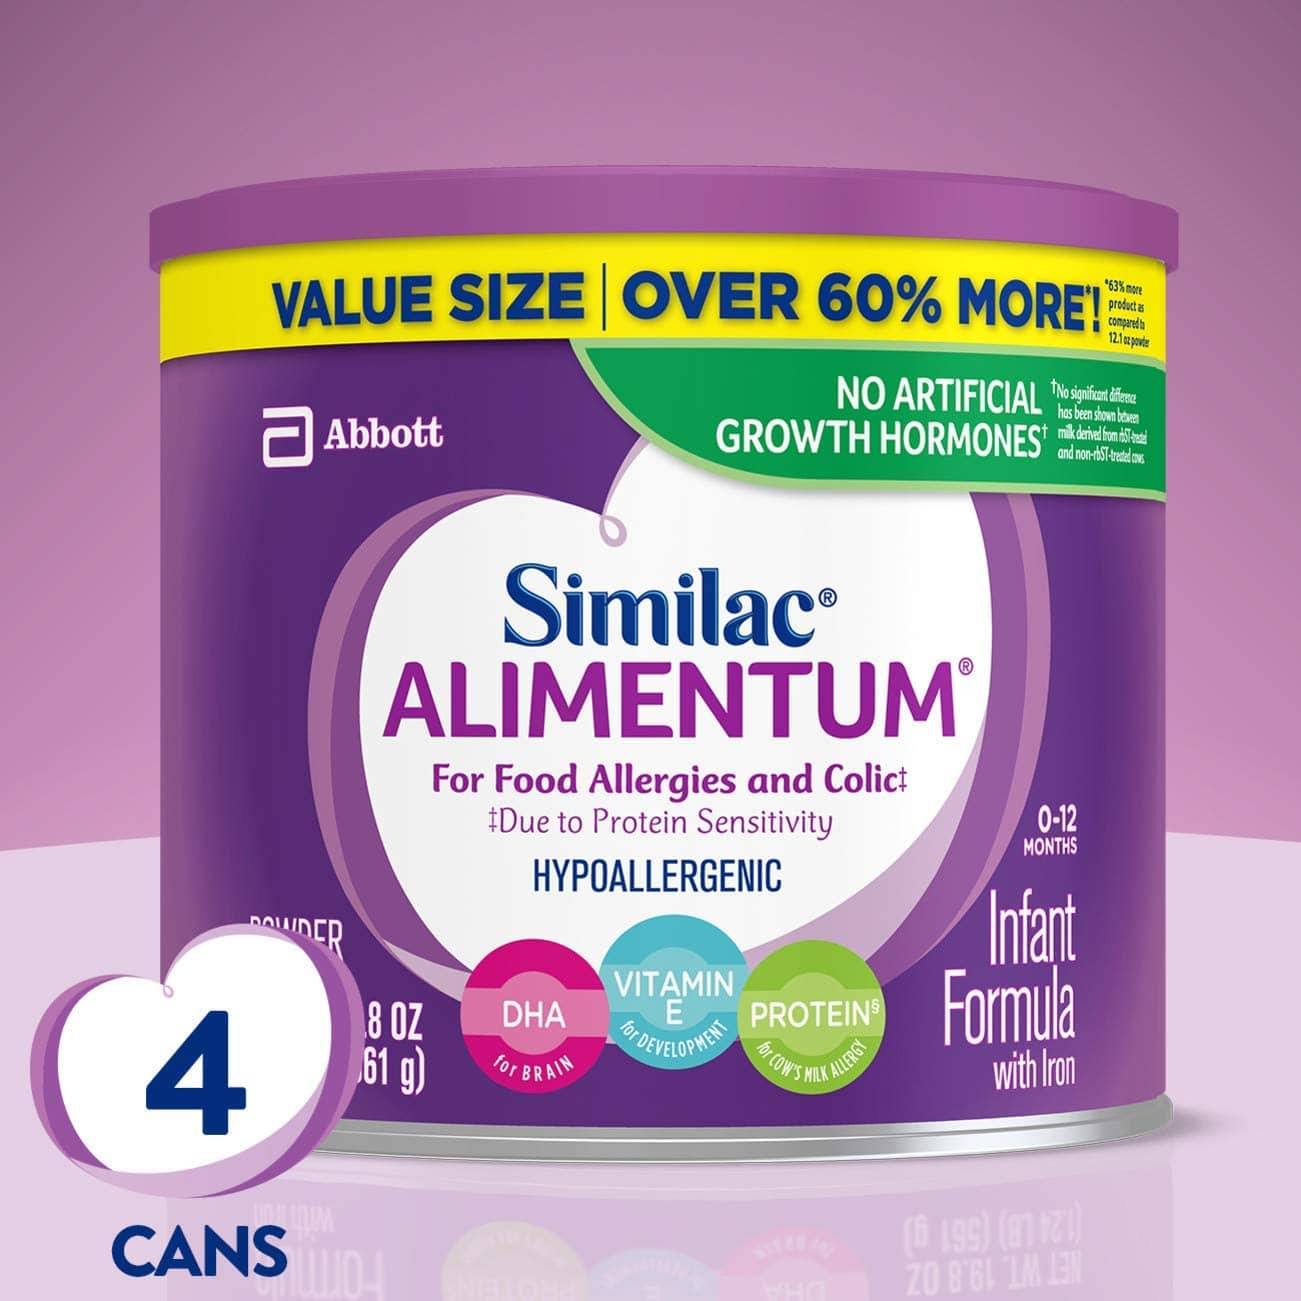 Alimentum Ready To Feed 2 Oz 4-pack 19.8oz similac alimentum hypoallergenic infant formula expired